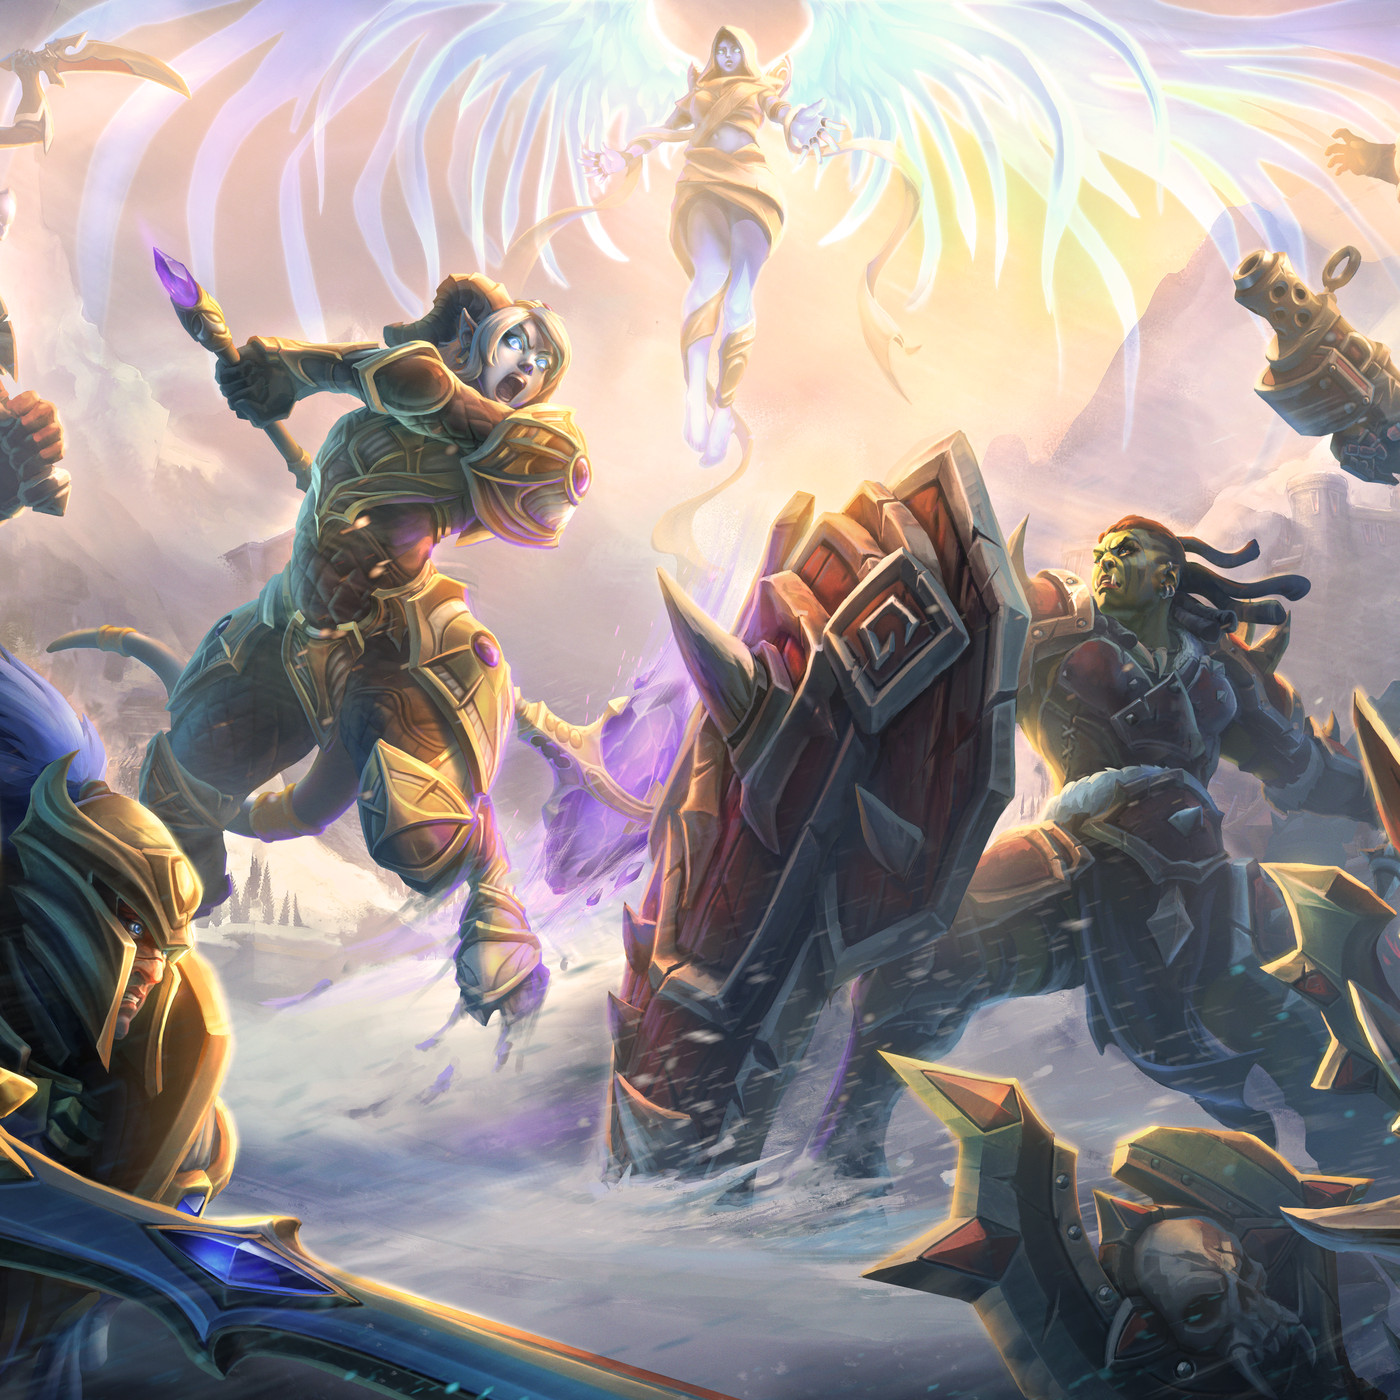 Heroes Of The Storm Celebrates All Things Warcraft With Echoes Of Alterac Polygon You can contribute to this list by voting your opinion. things warcraft with echoes of alterac